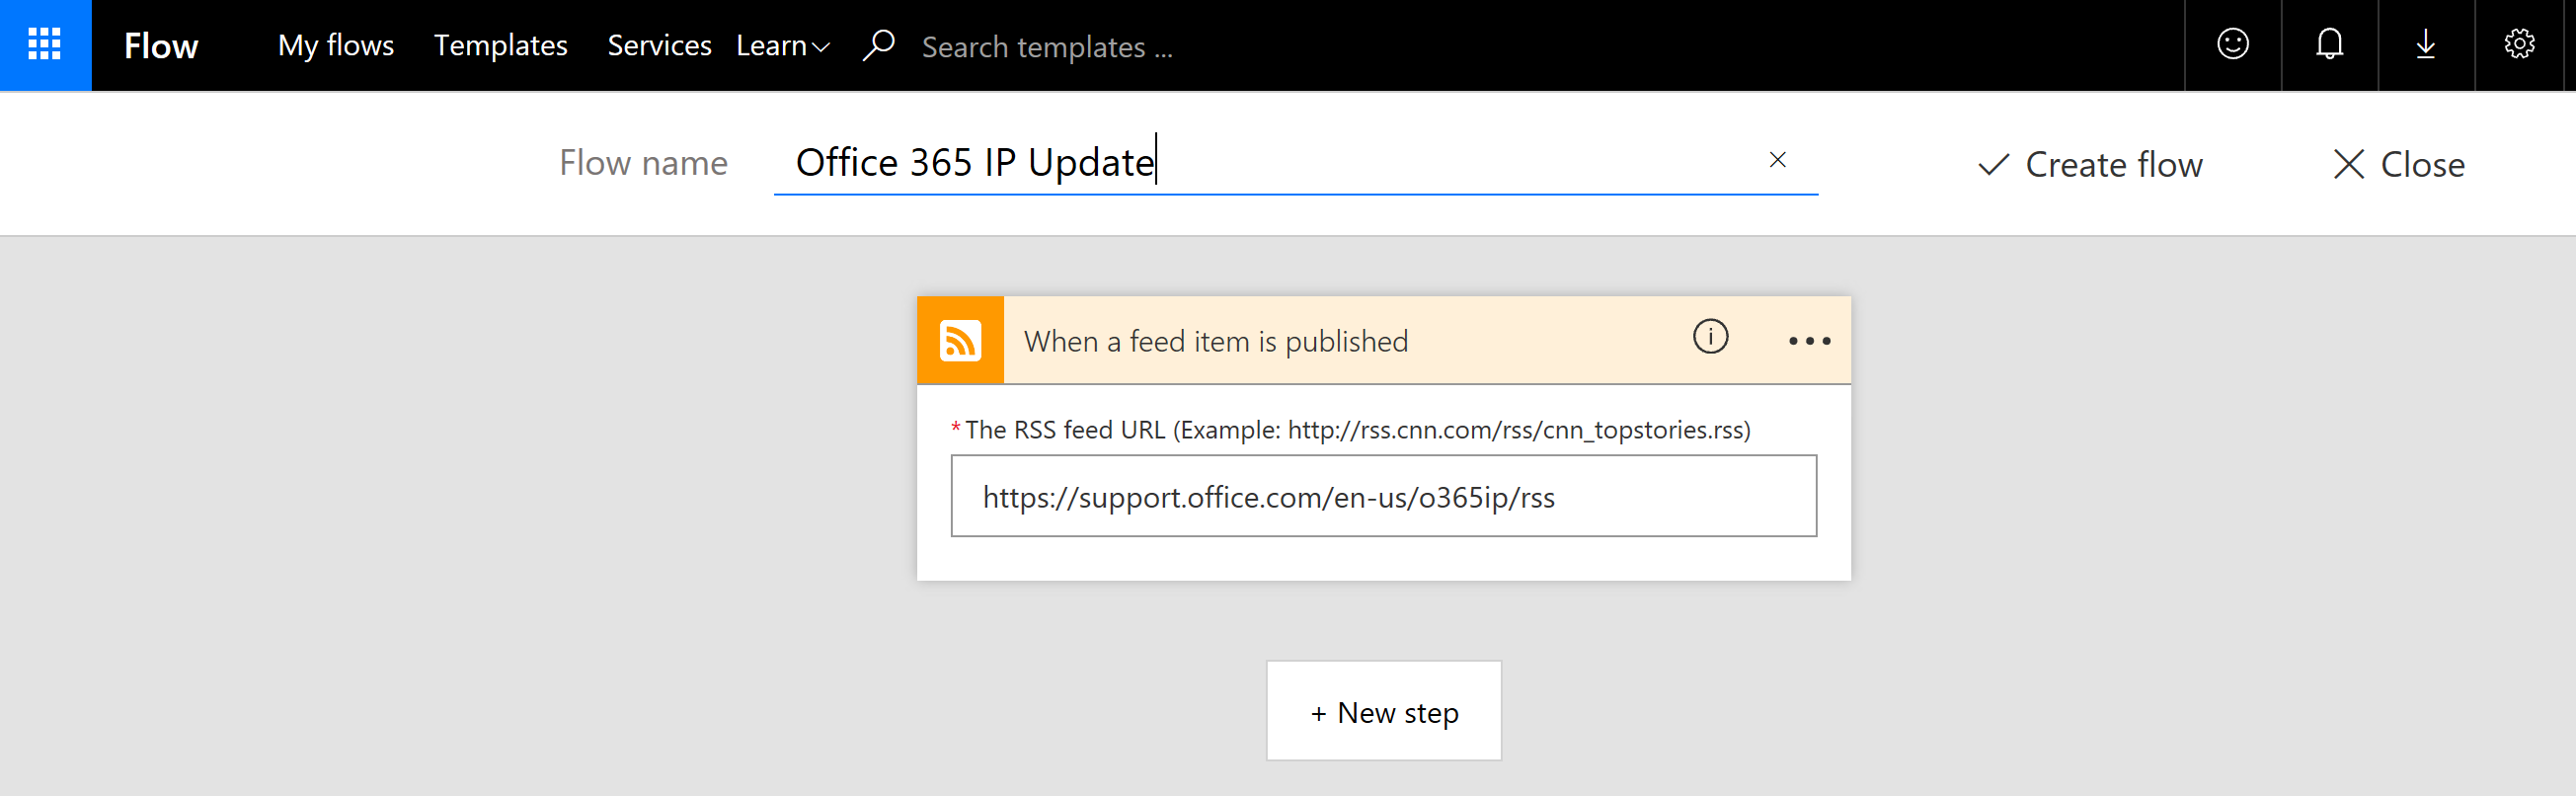 Keep up to date with Office 365 IP Changes | Miss Tech